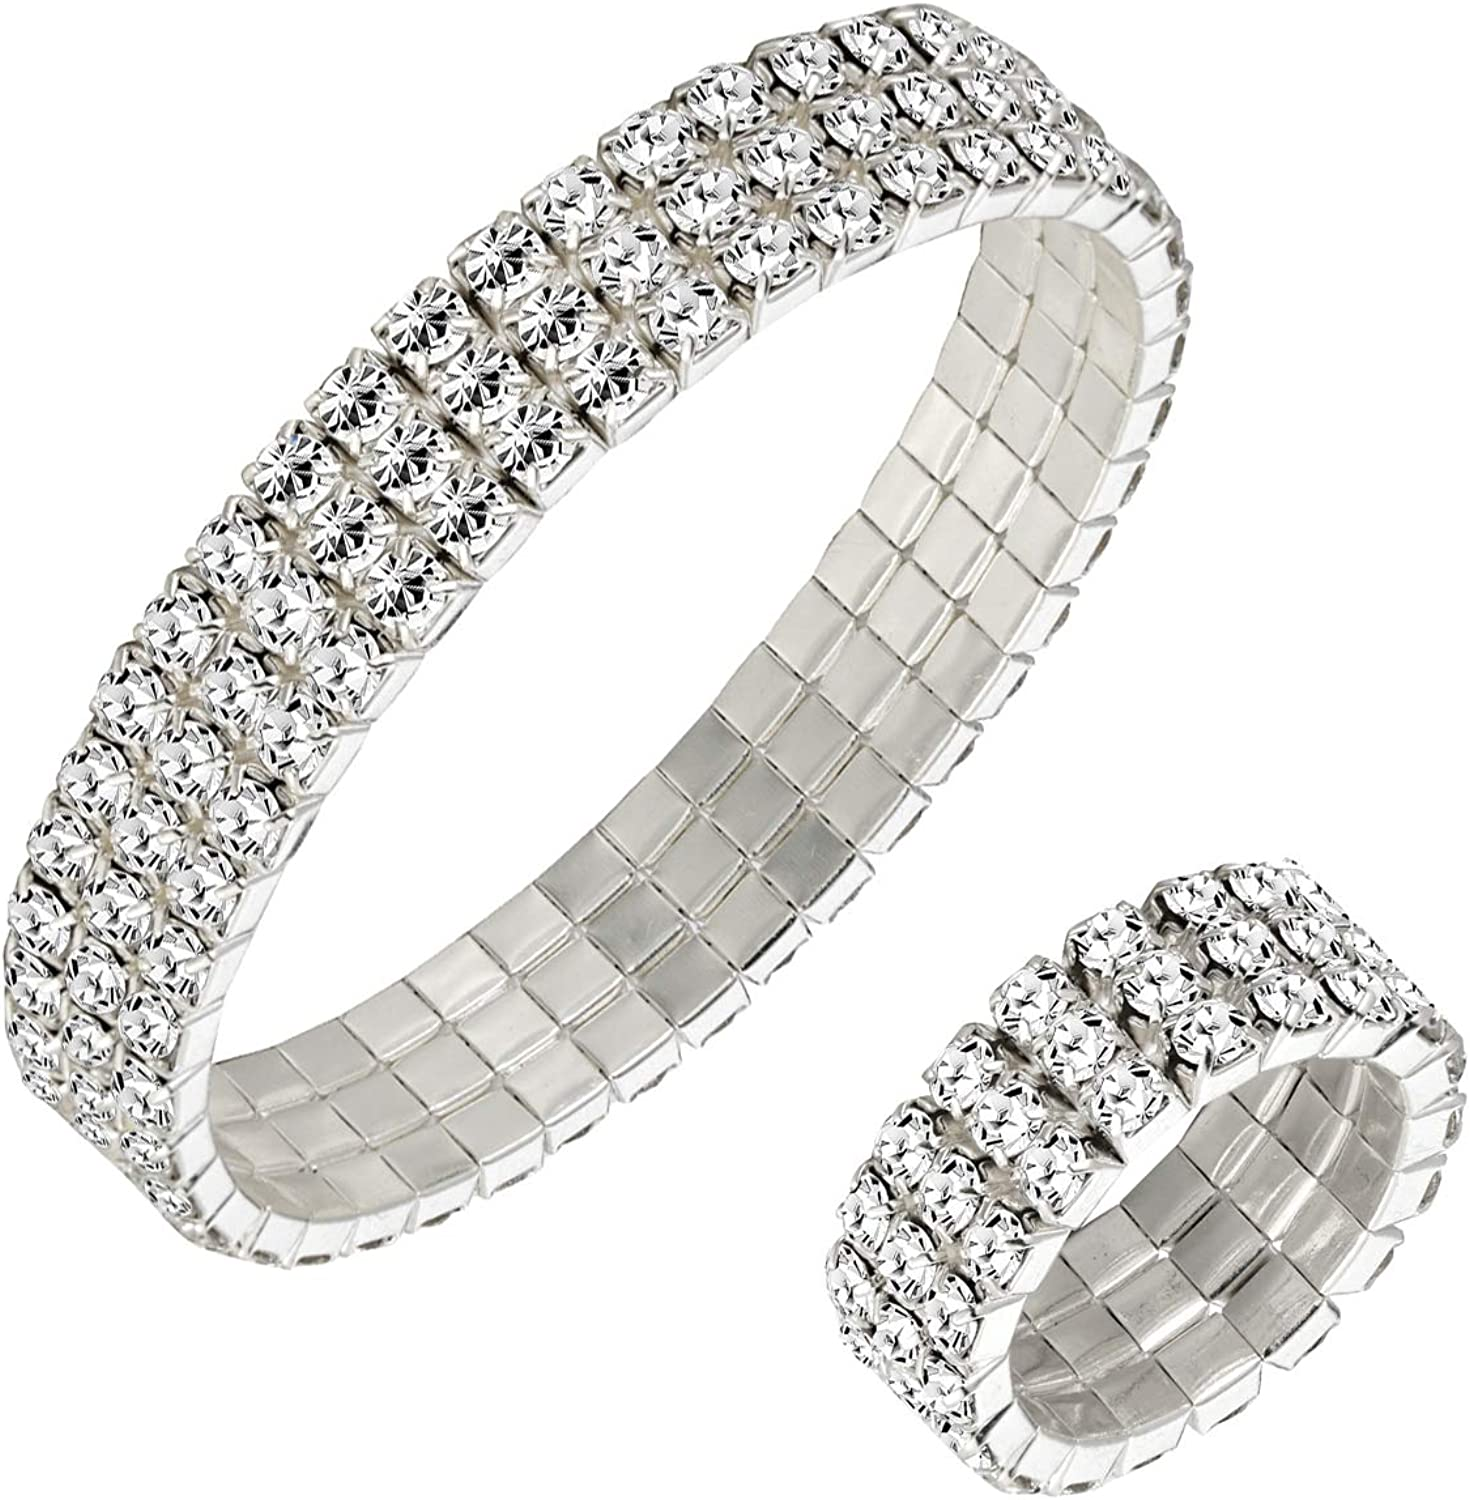 Diamante Pearls 3 Rows Stretch Elastic BRACELET White Charm Band Crystal Gift